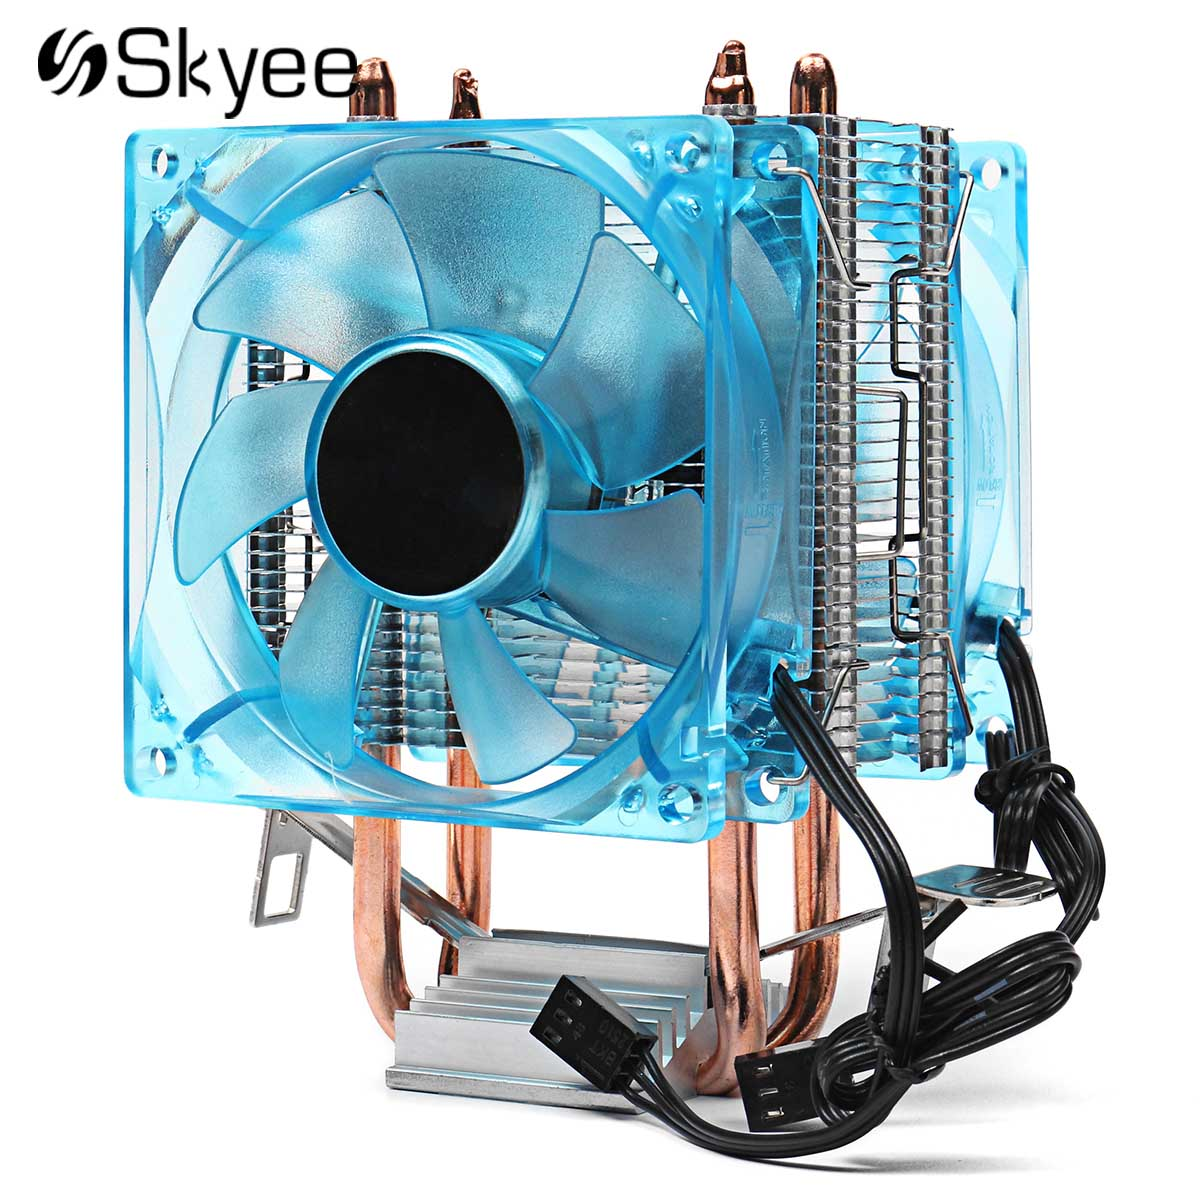 Blue 3pin 90mm Dual Copper Pipe LED CPU Cooling Fan Aluminum Heatsink Cooler Cooling Fan for AMD AM2 + AM3 +Intel 775 1155 1156 quiet cooled fan core led cpu cooler cooling fan cooler heatsink for intel socket lga1156 1155 775 amd am3 high quality